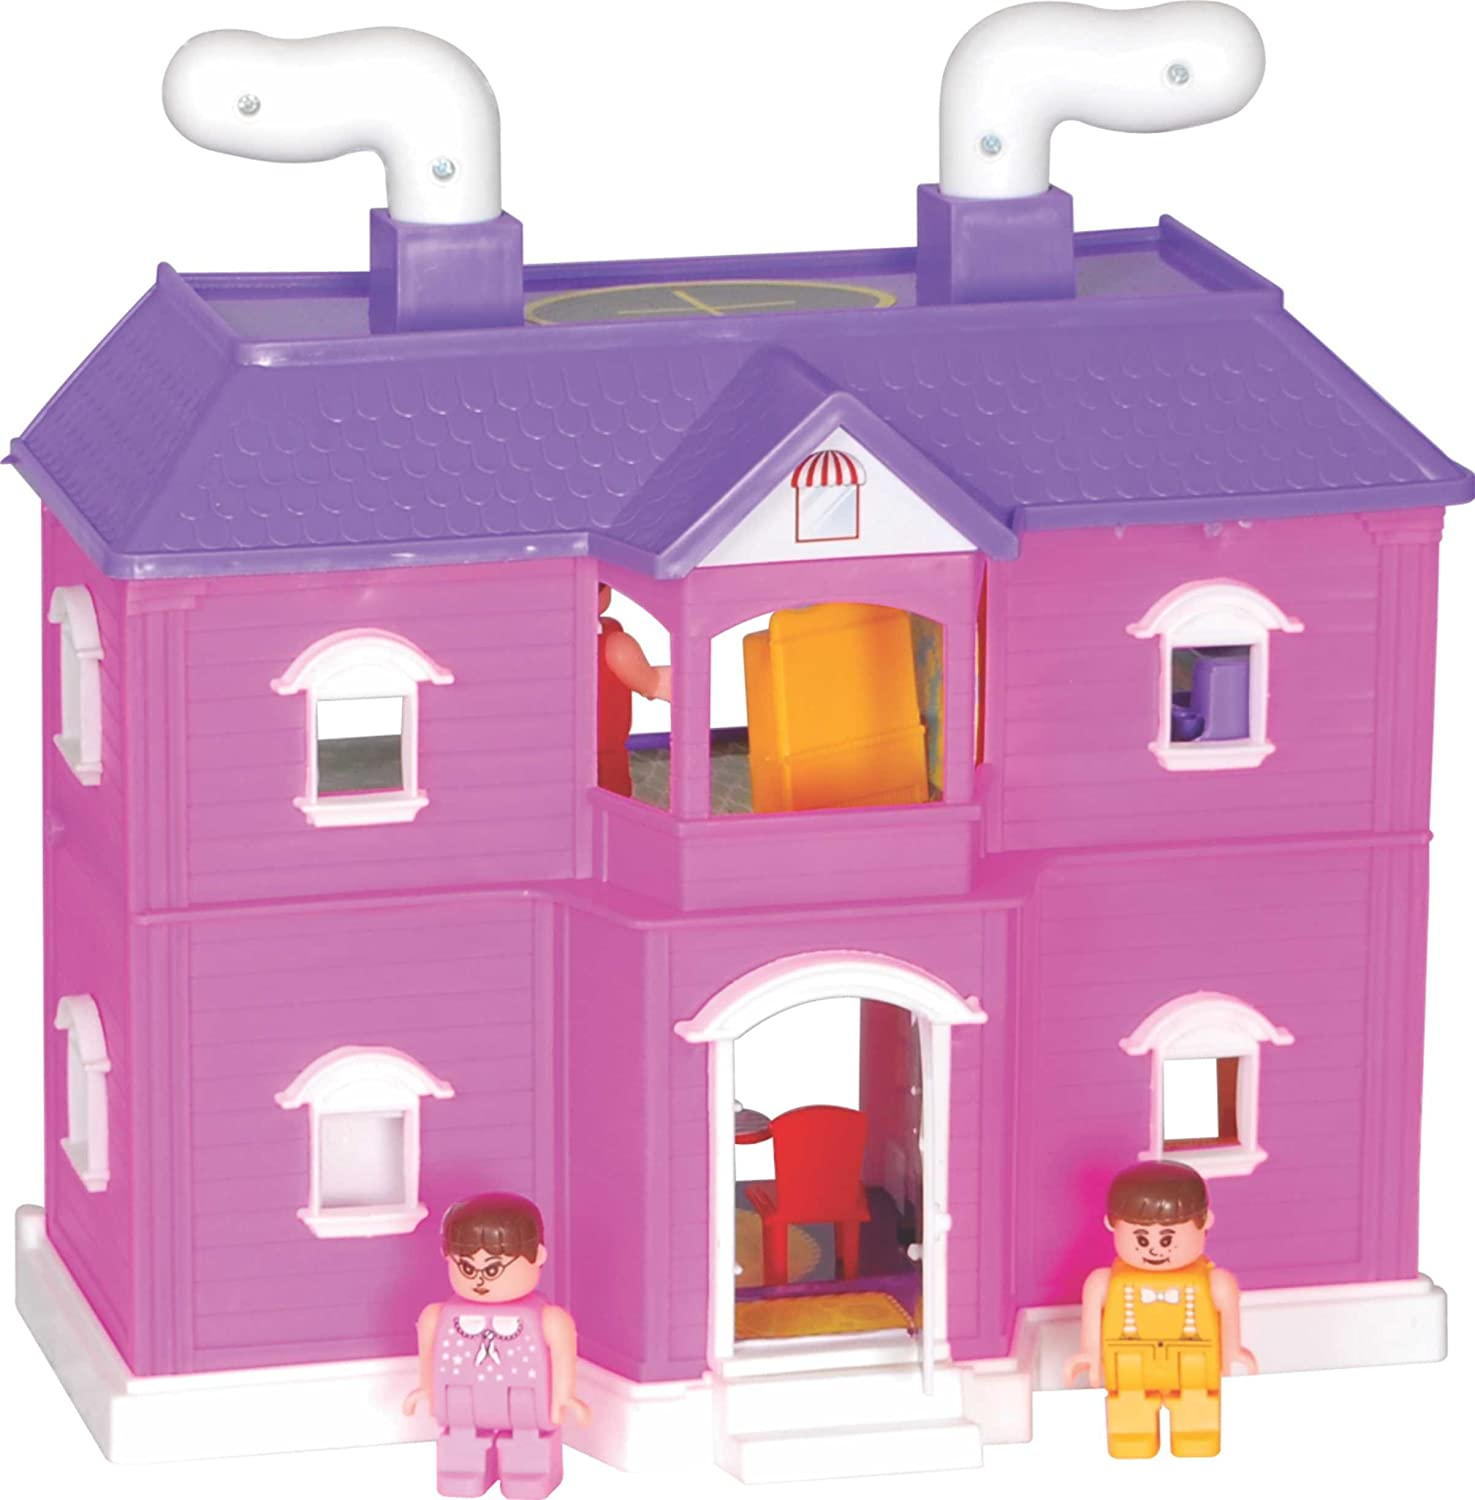 Images of doll houses - Toyzone My Family Doll House Multi Color